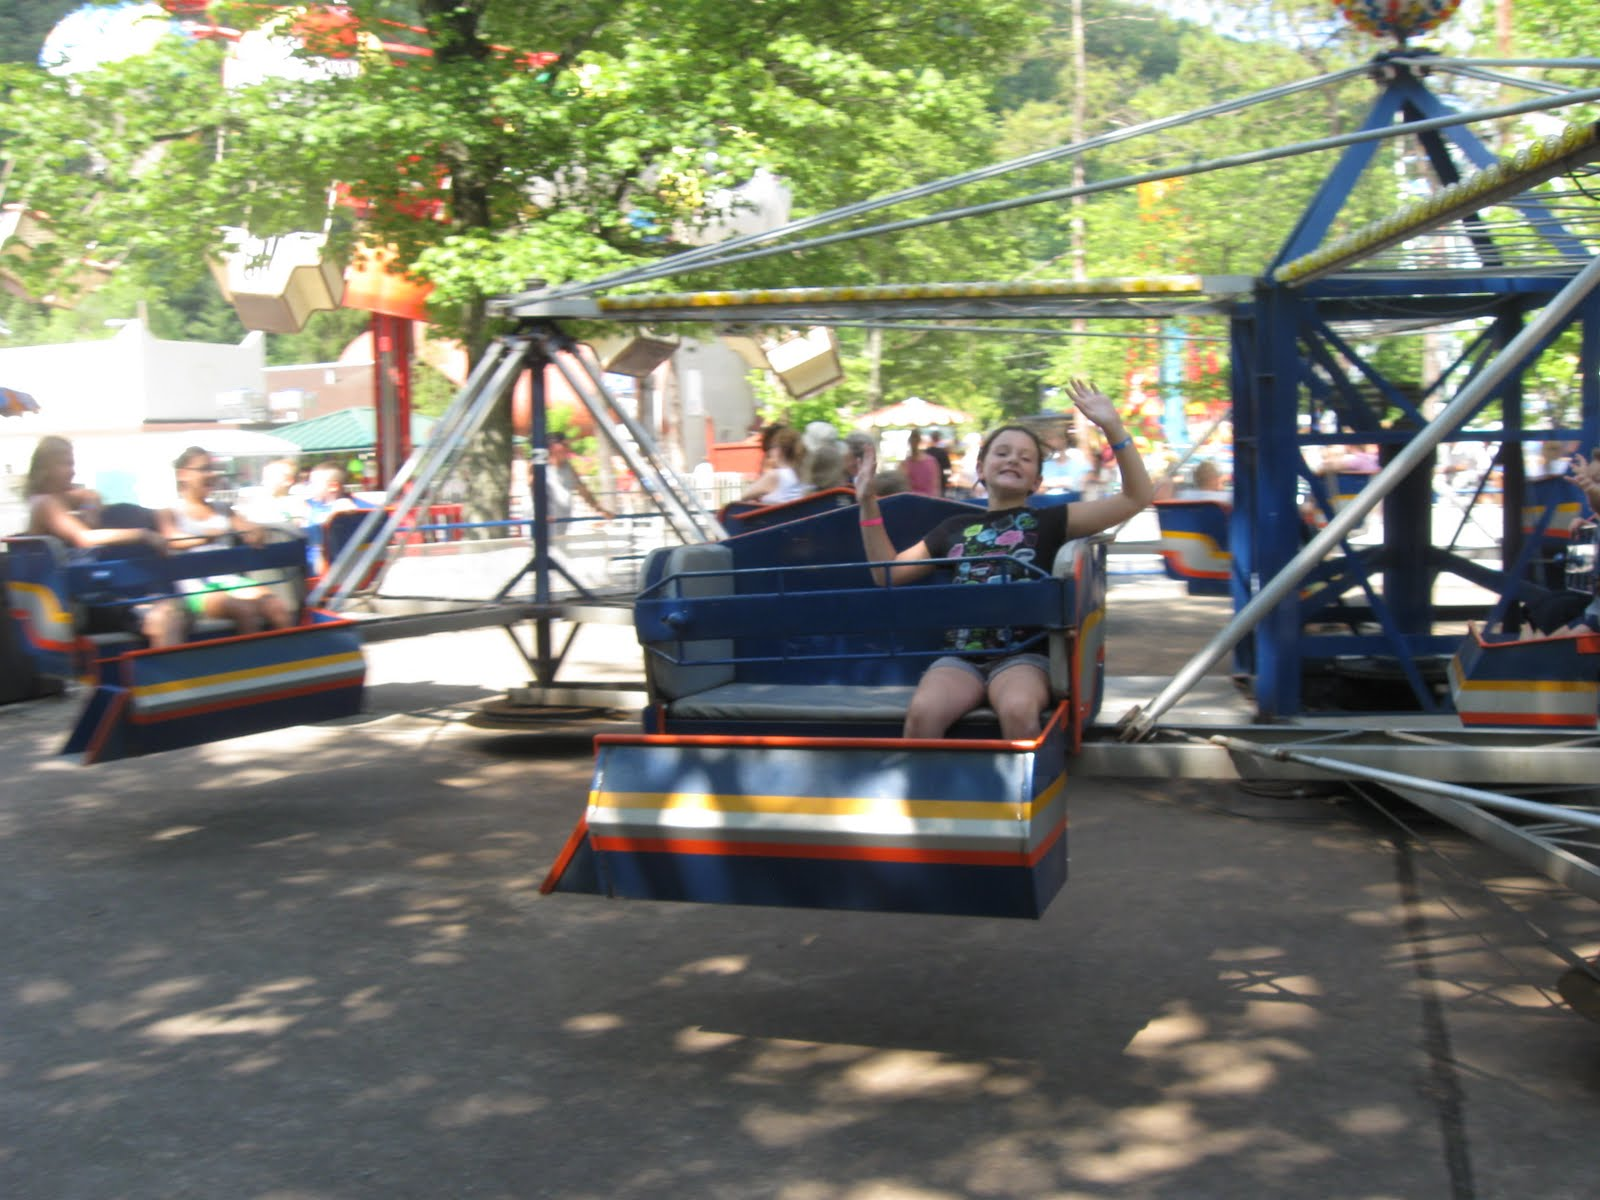 Permalink to Discount Knoebels Tickets